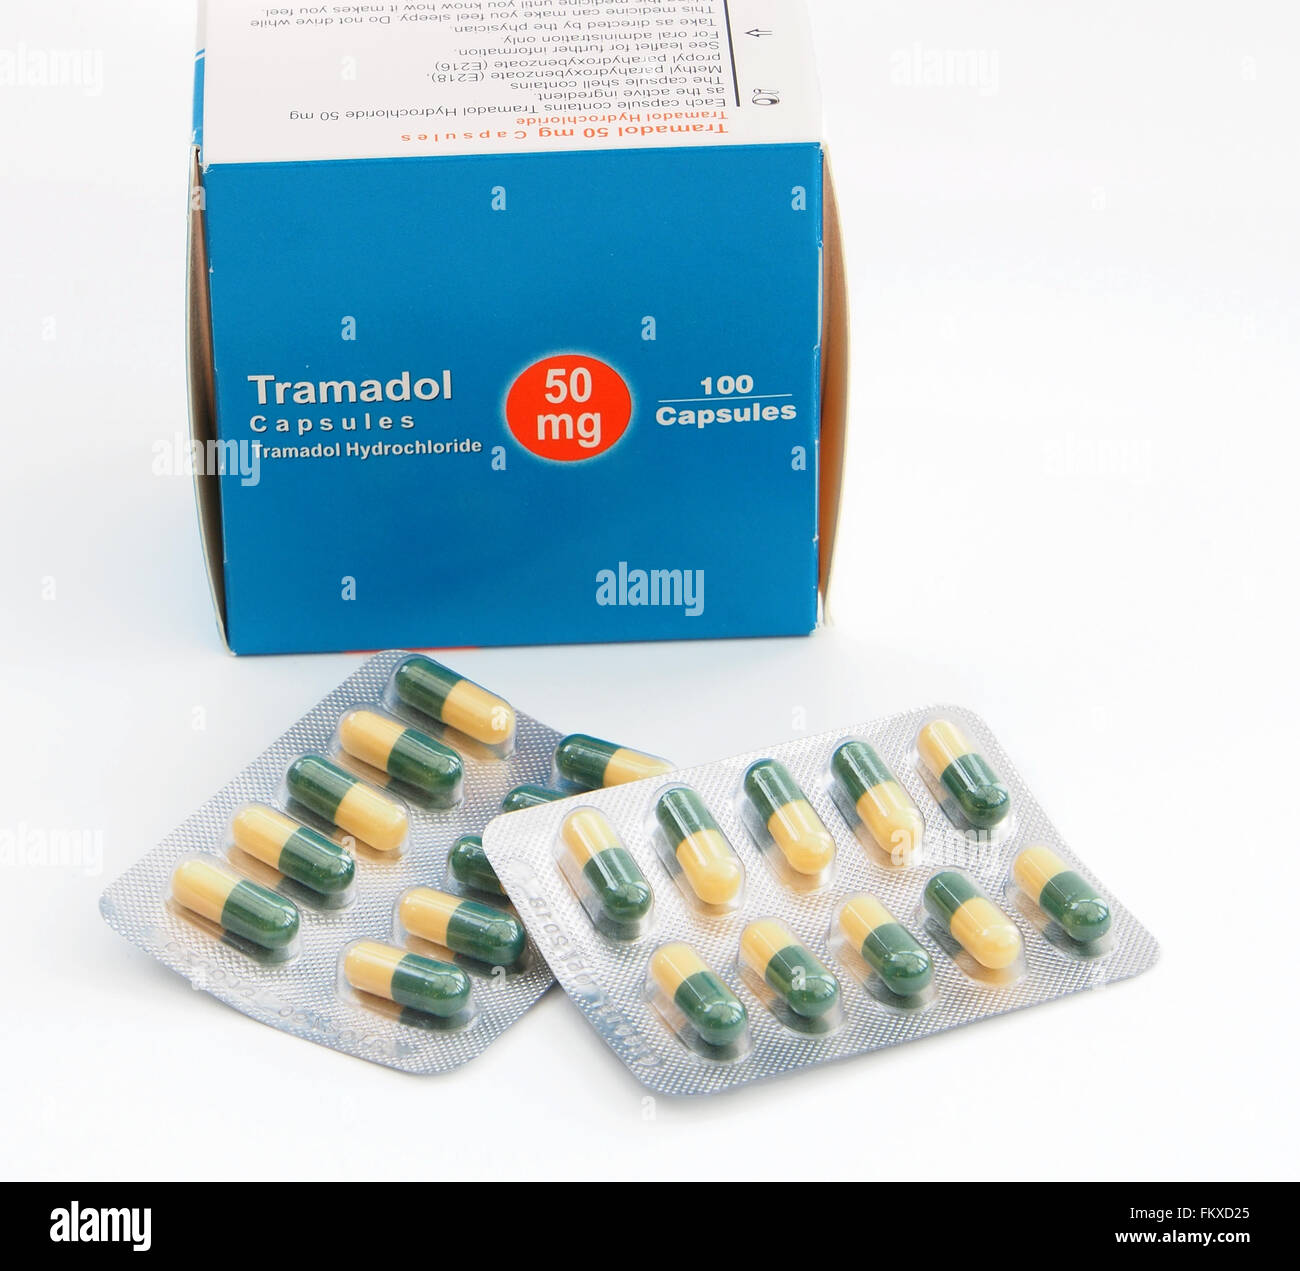 tramadol for dogs medication pain relief